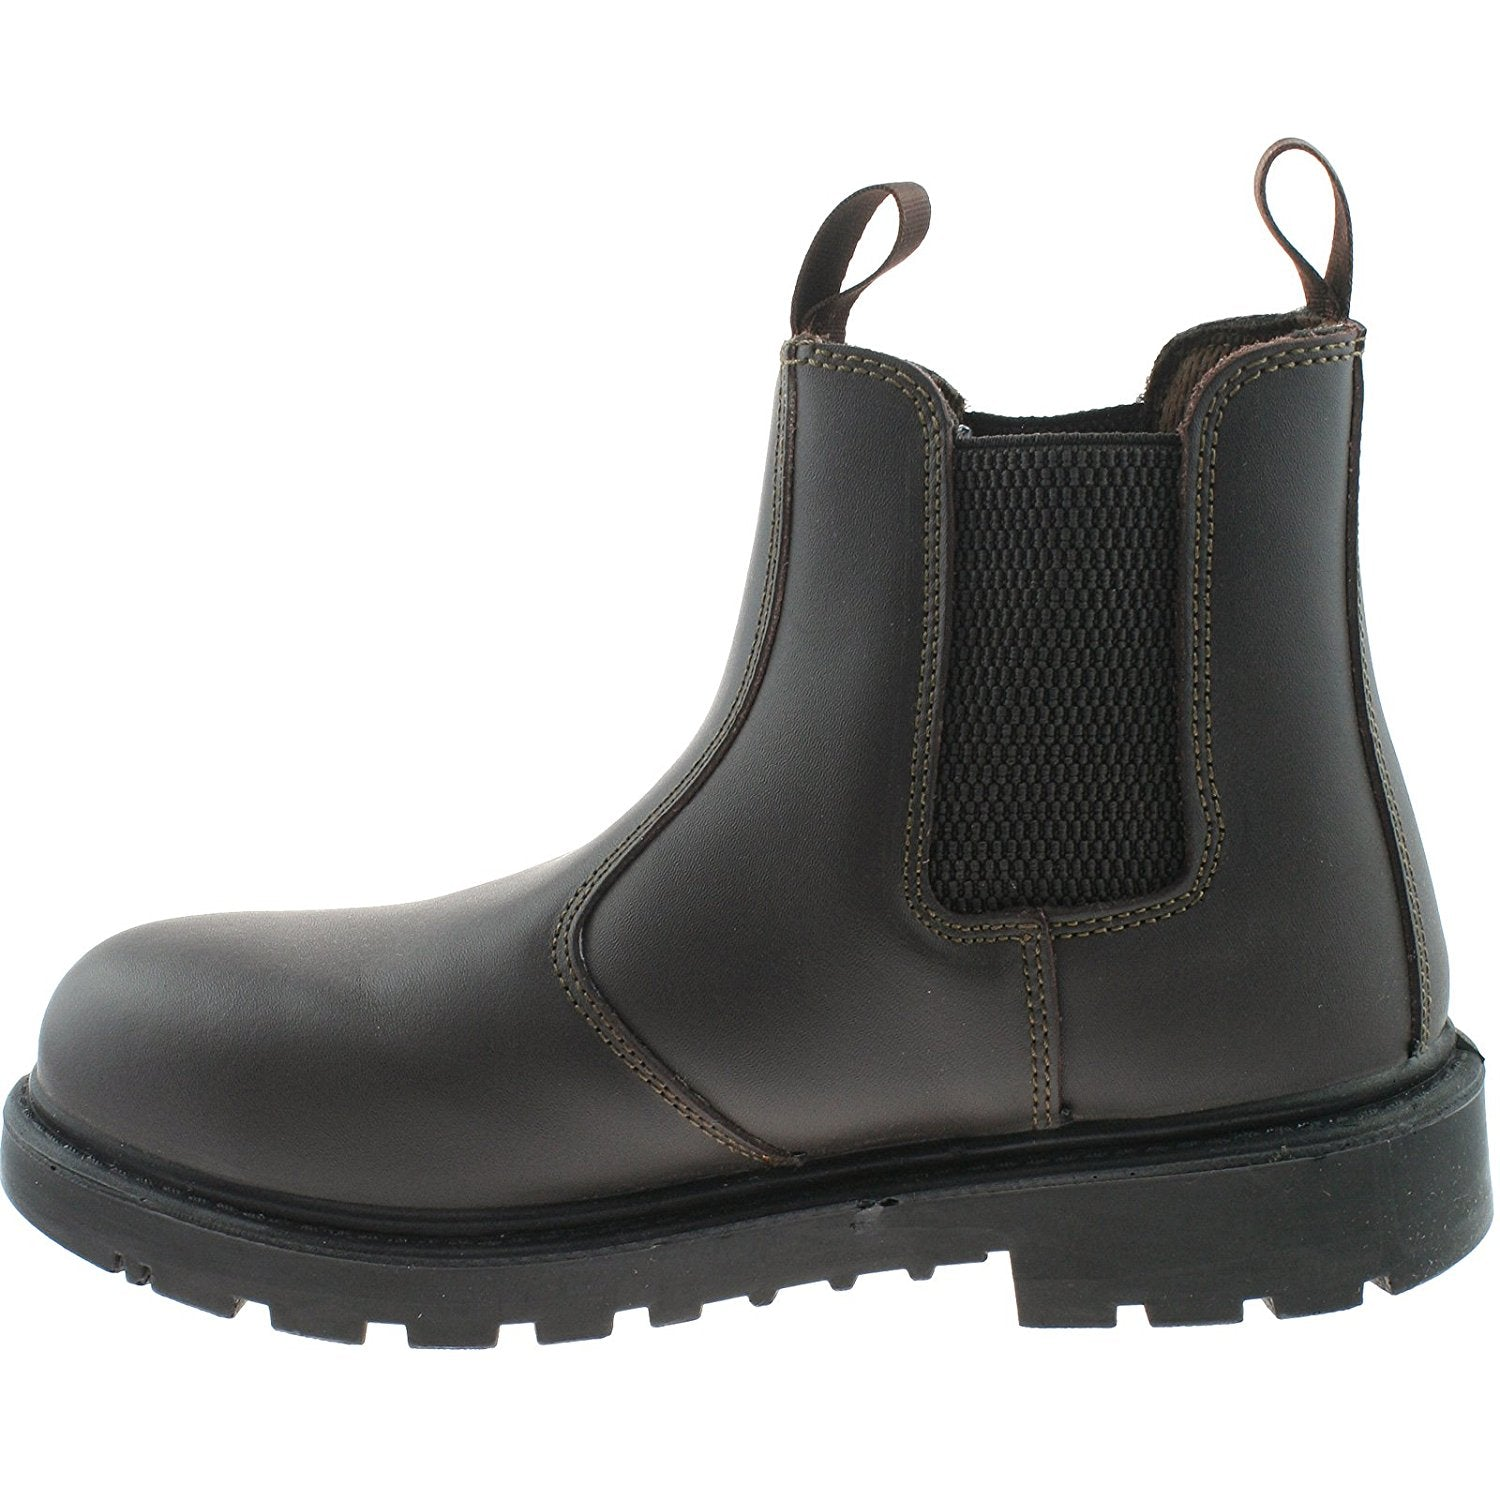 elastic gusset safety boot with steel toe